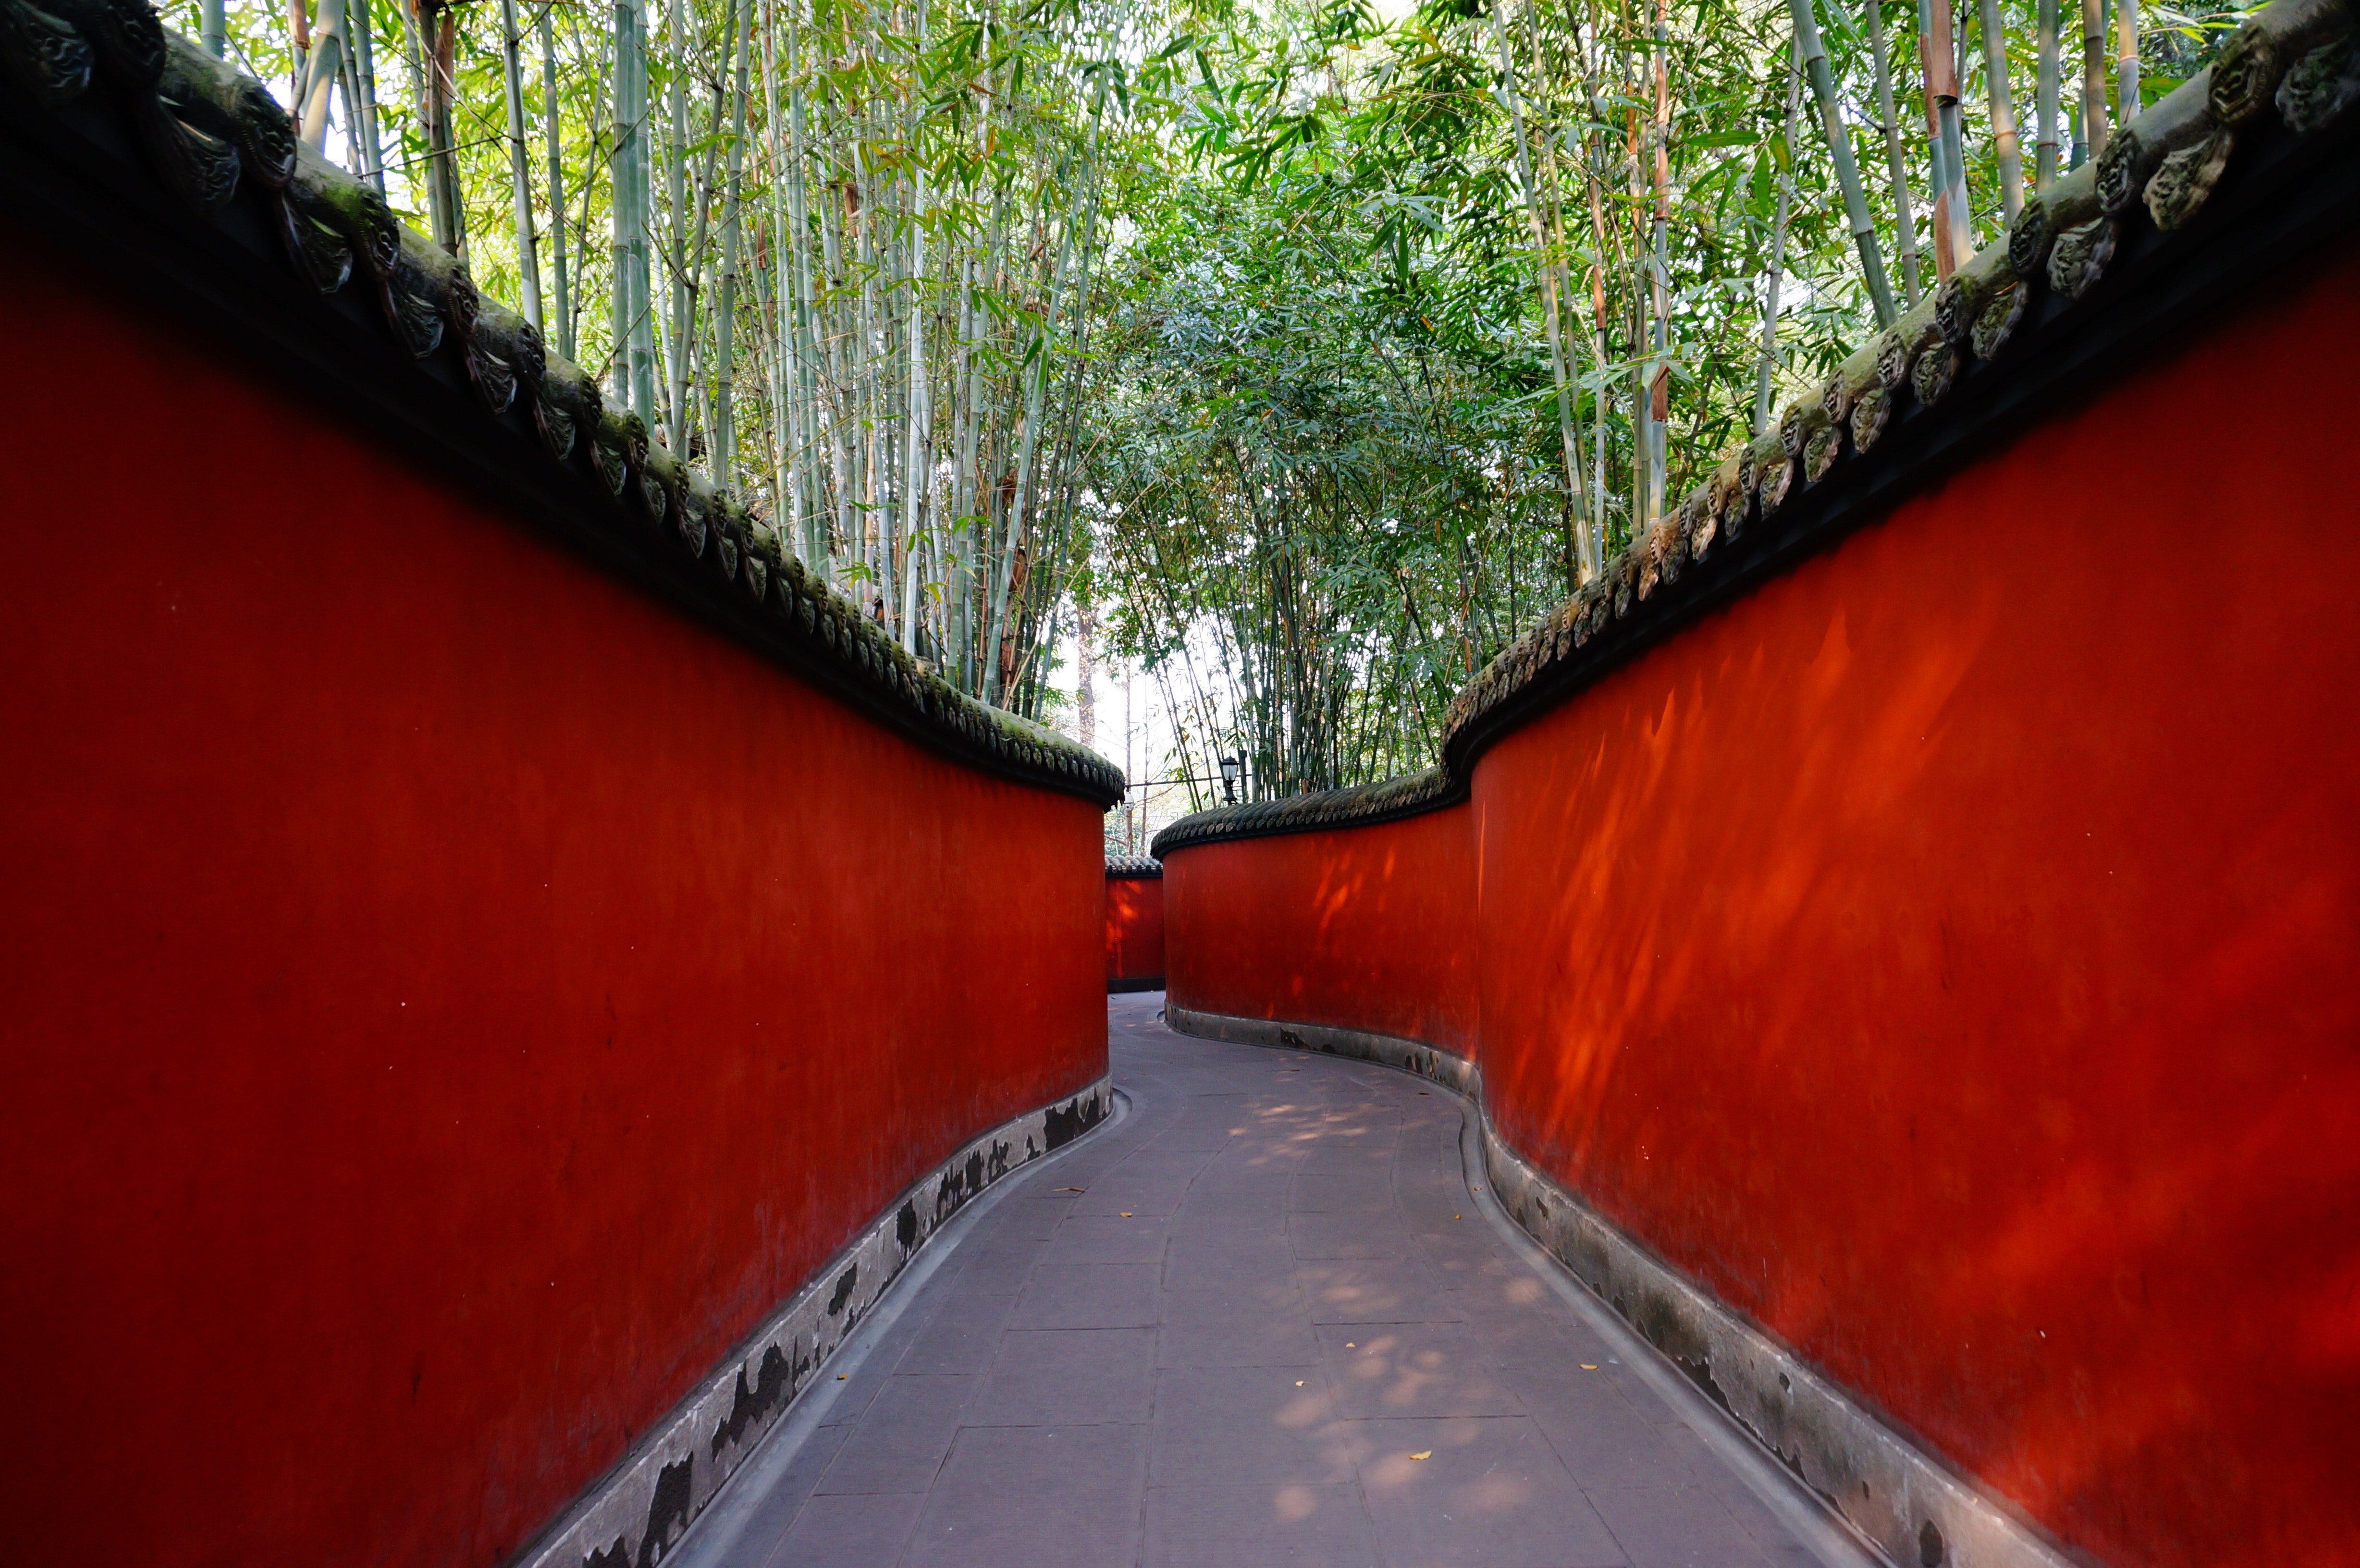 Red and Gray Pathway Near Trees, Bamboo, Path, Trees, Scenic, HQ Photo